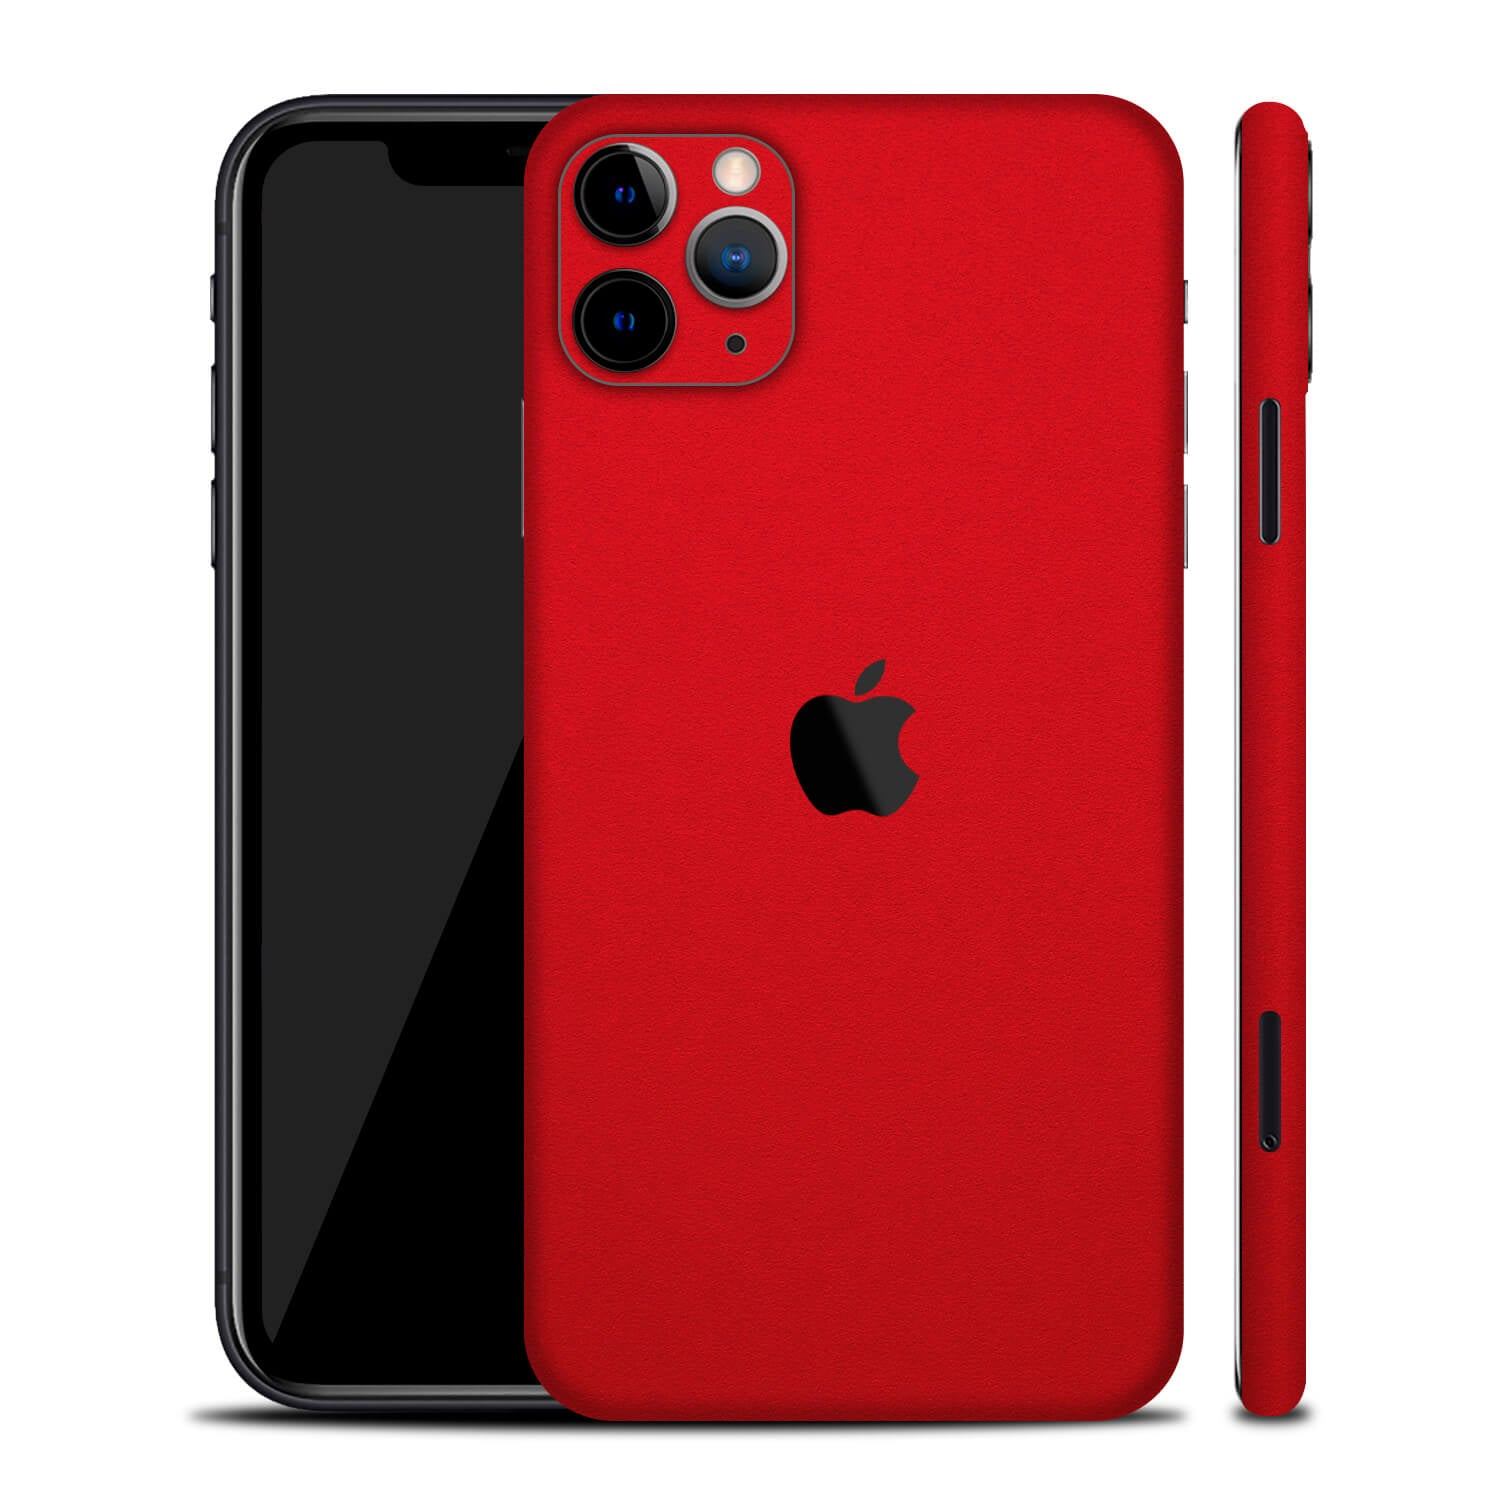 Iphone 11 Pro Max Skins And Wraps Custom Iphone Skins Xtremeskins